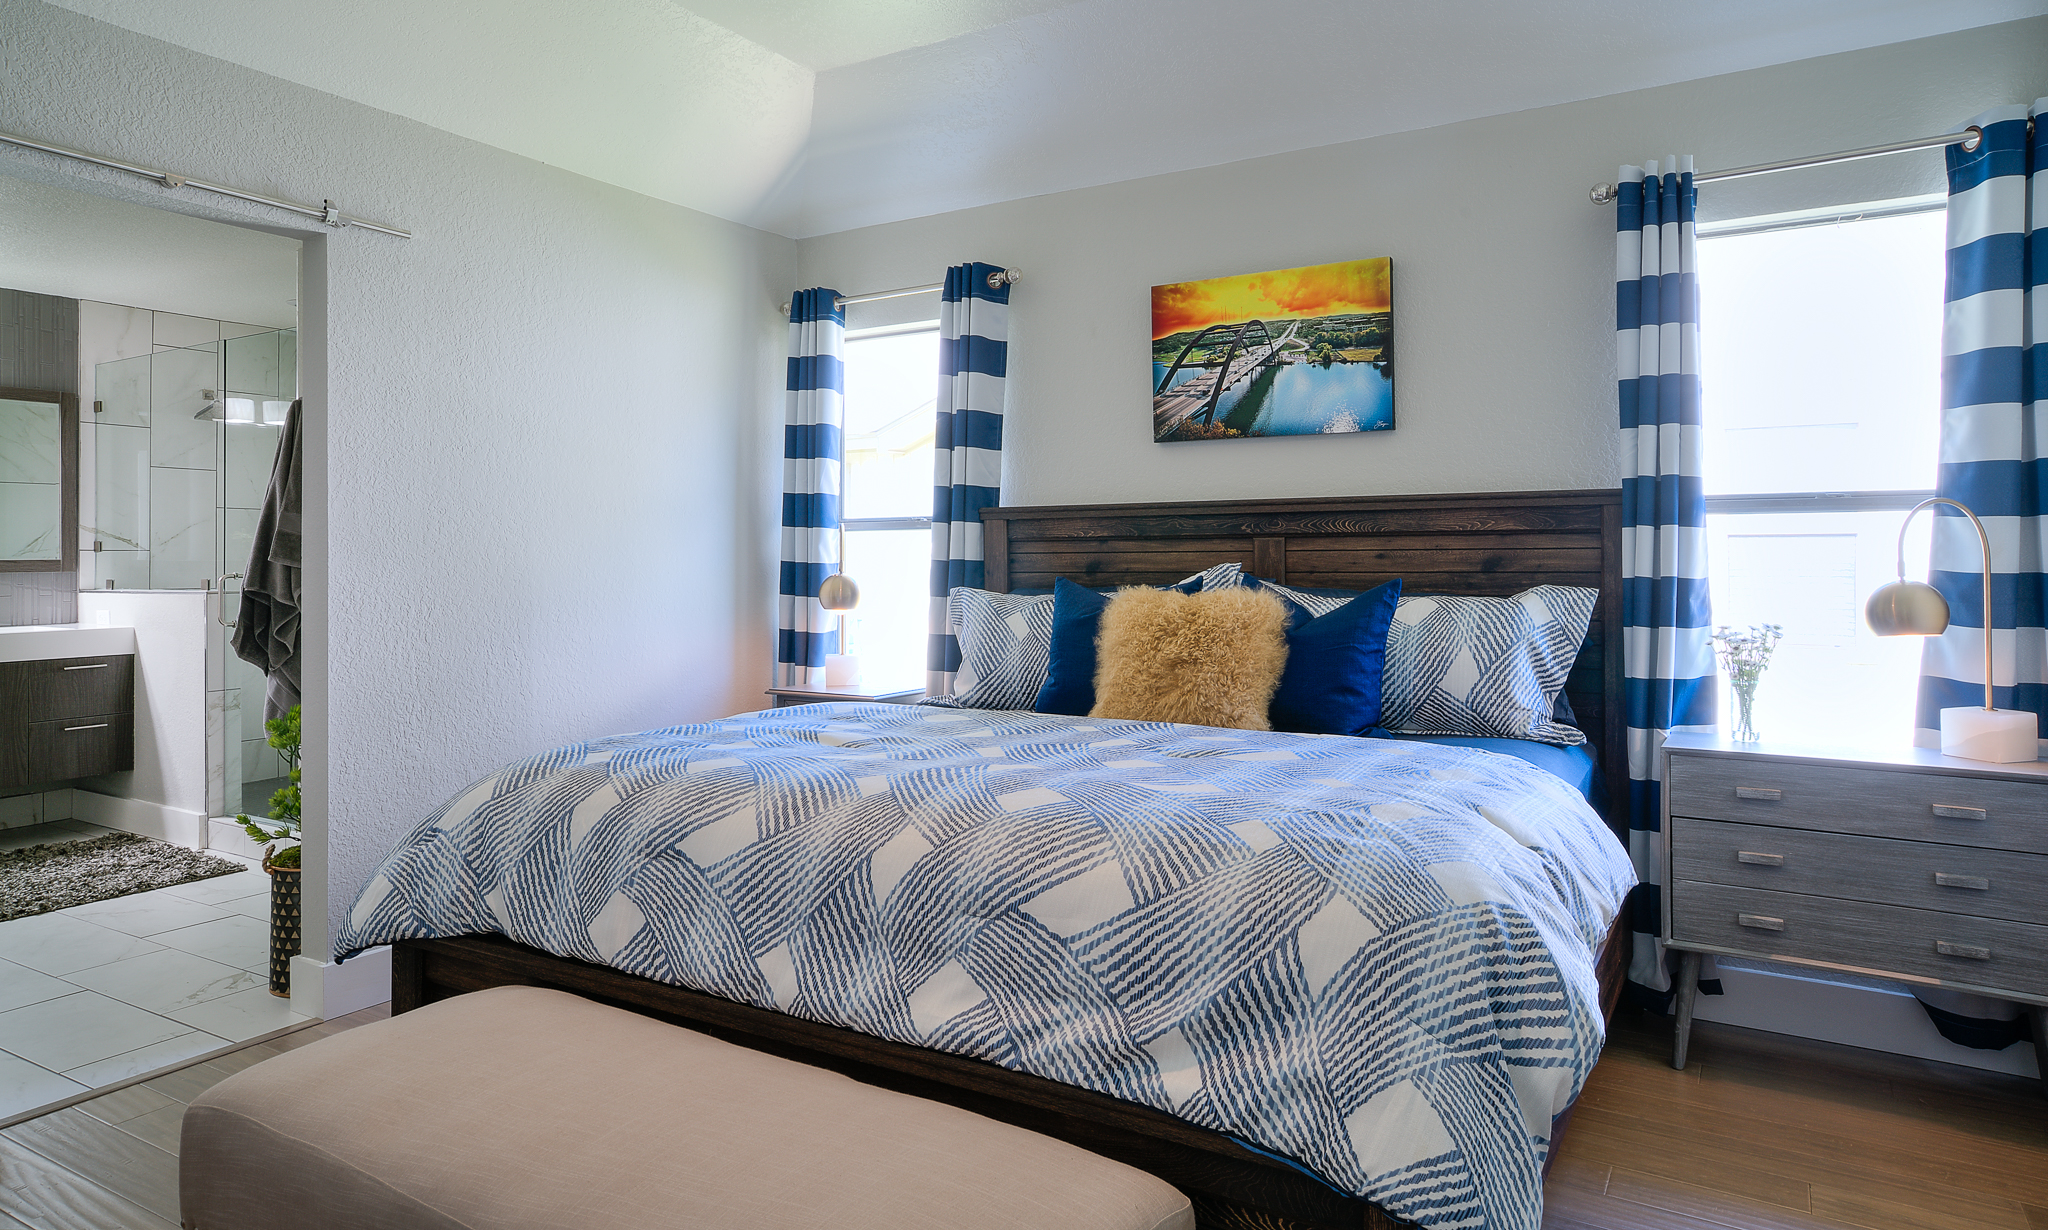 Blue bedroom interior design by Michelle Thomas in Austin, Texas